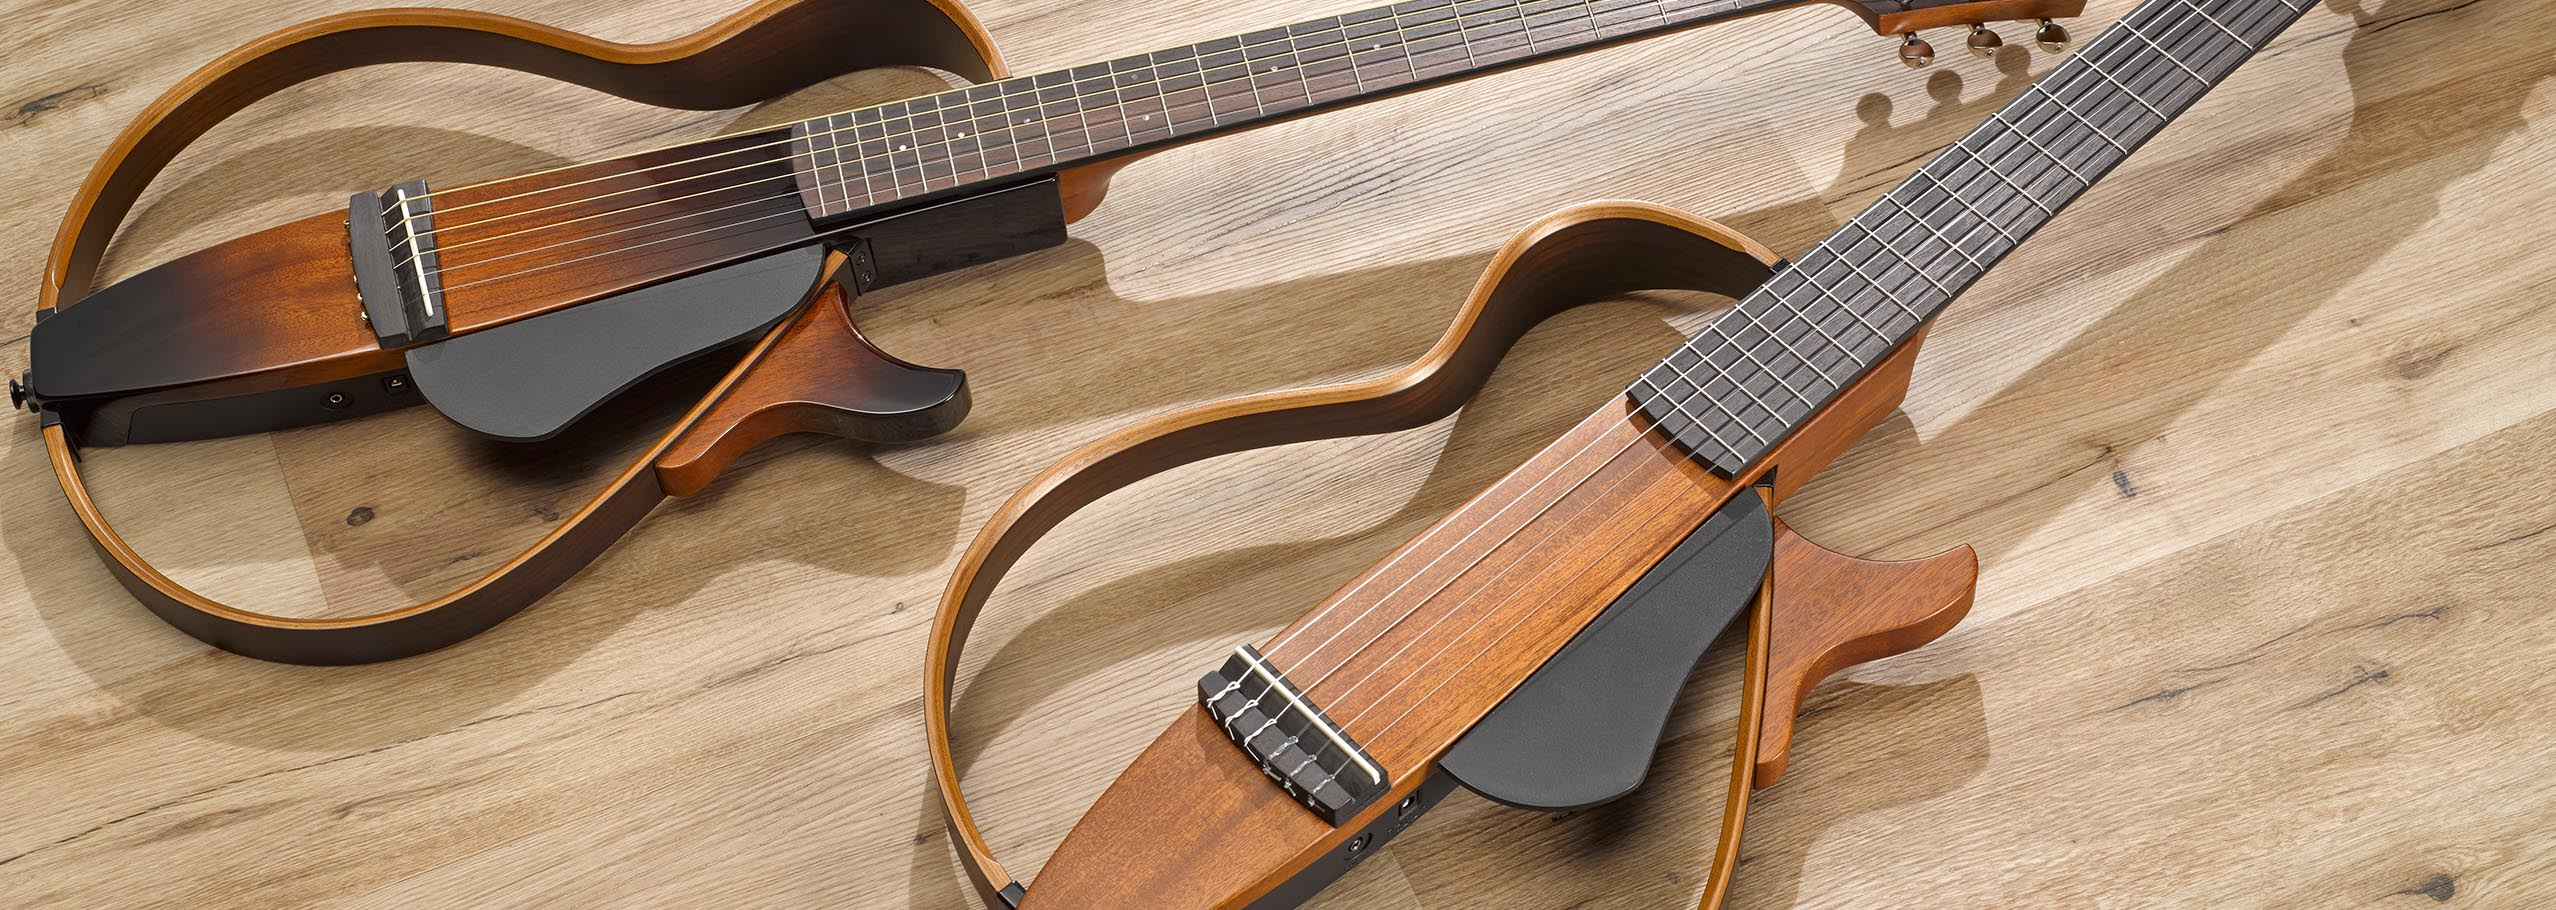 top 7 travel guitars in 2019 reviews advice. Black Bedroom Furniture Sets. Home Design Ideas